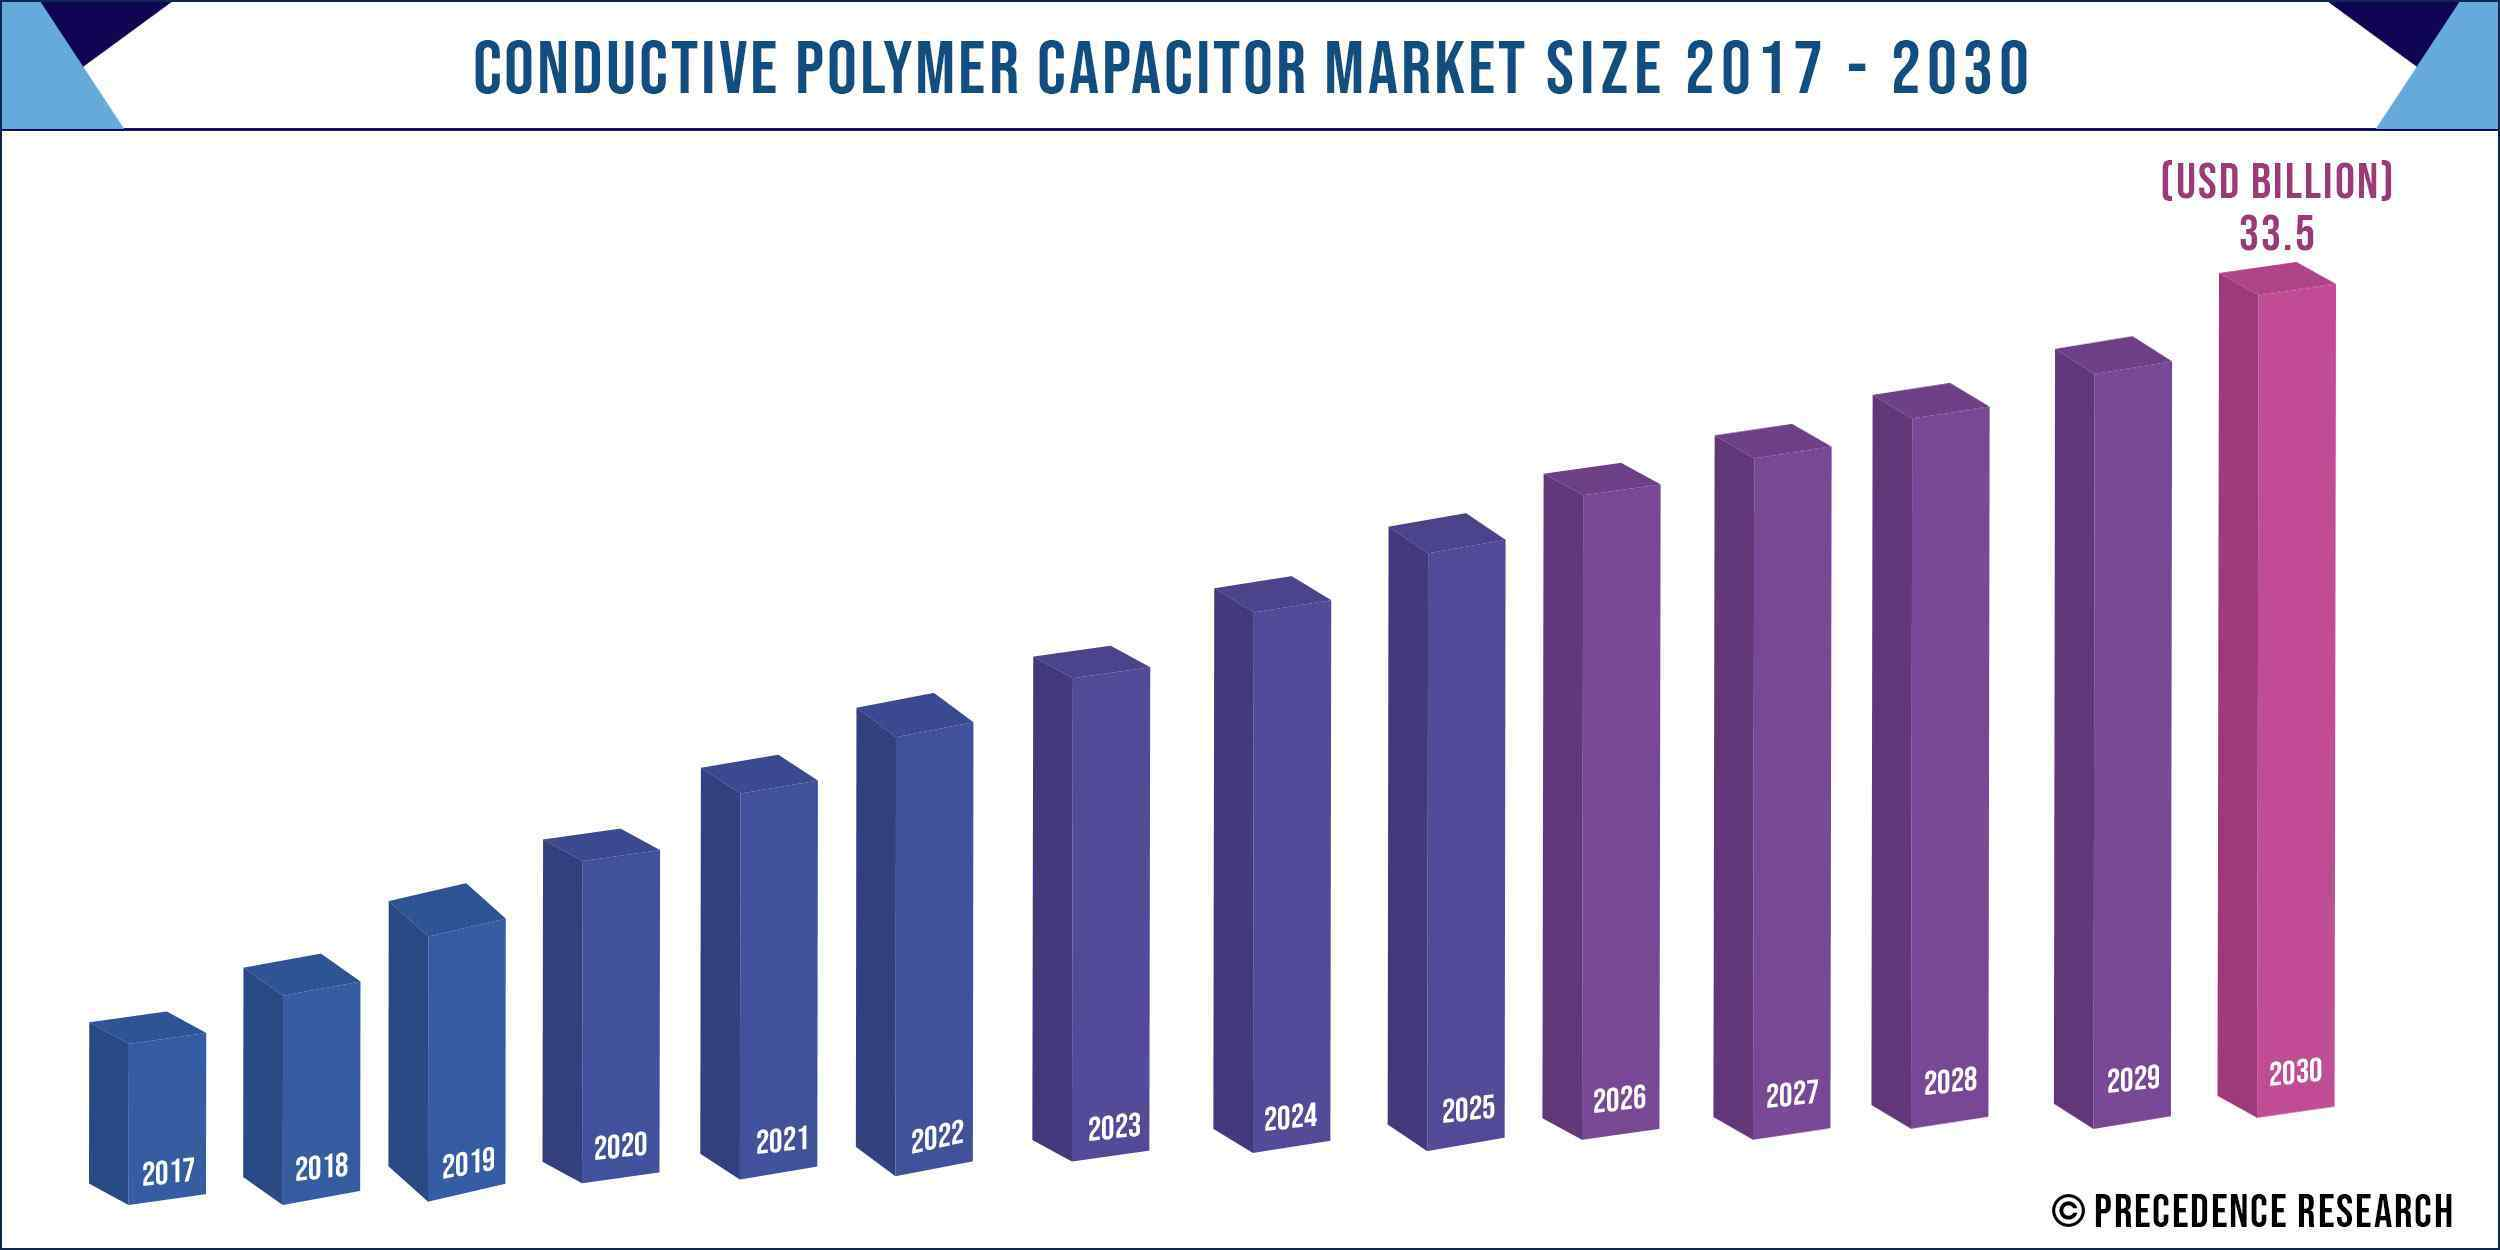 Conductive Polymer Capacitor Market Size 2017-2030